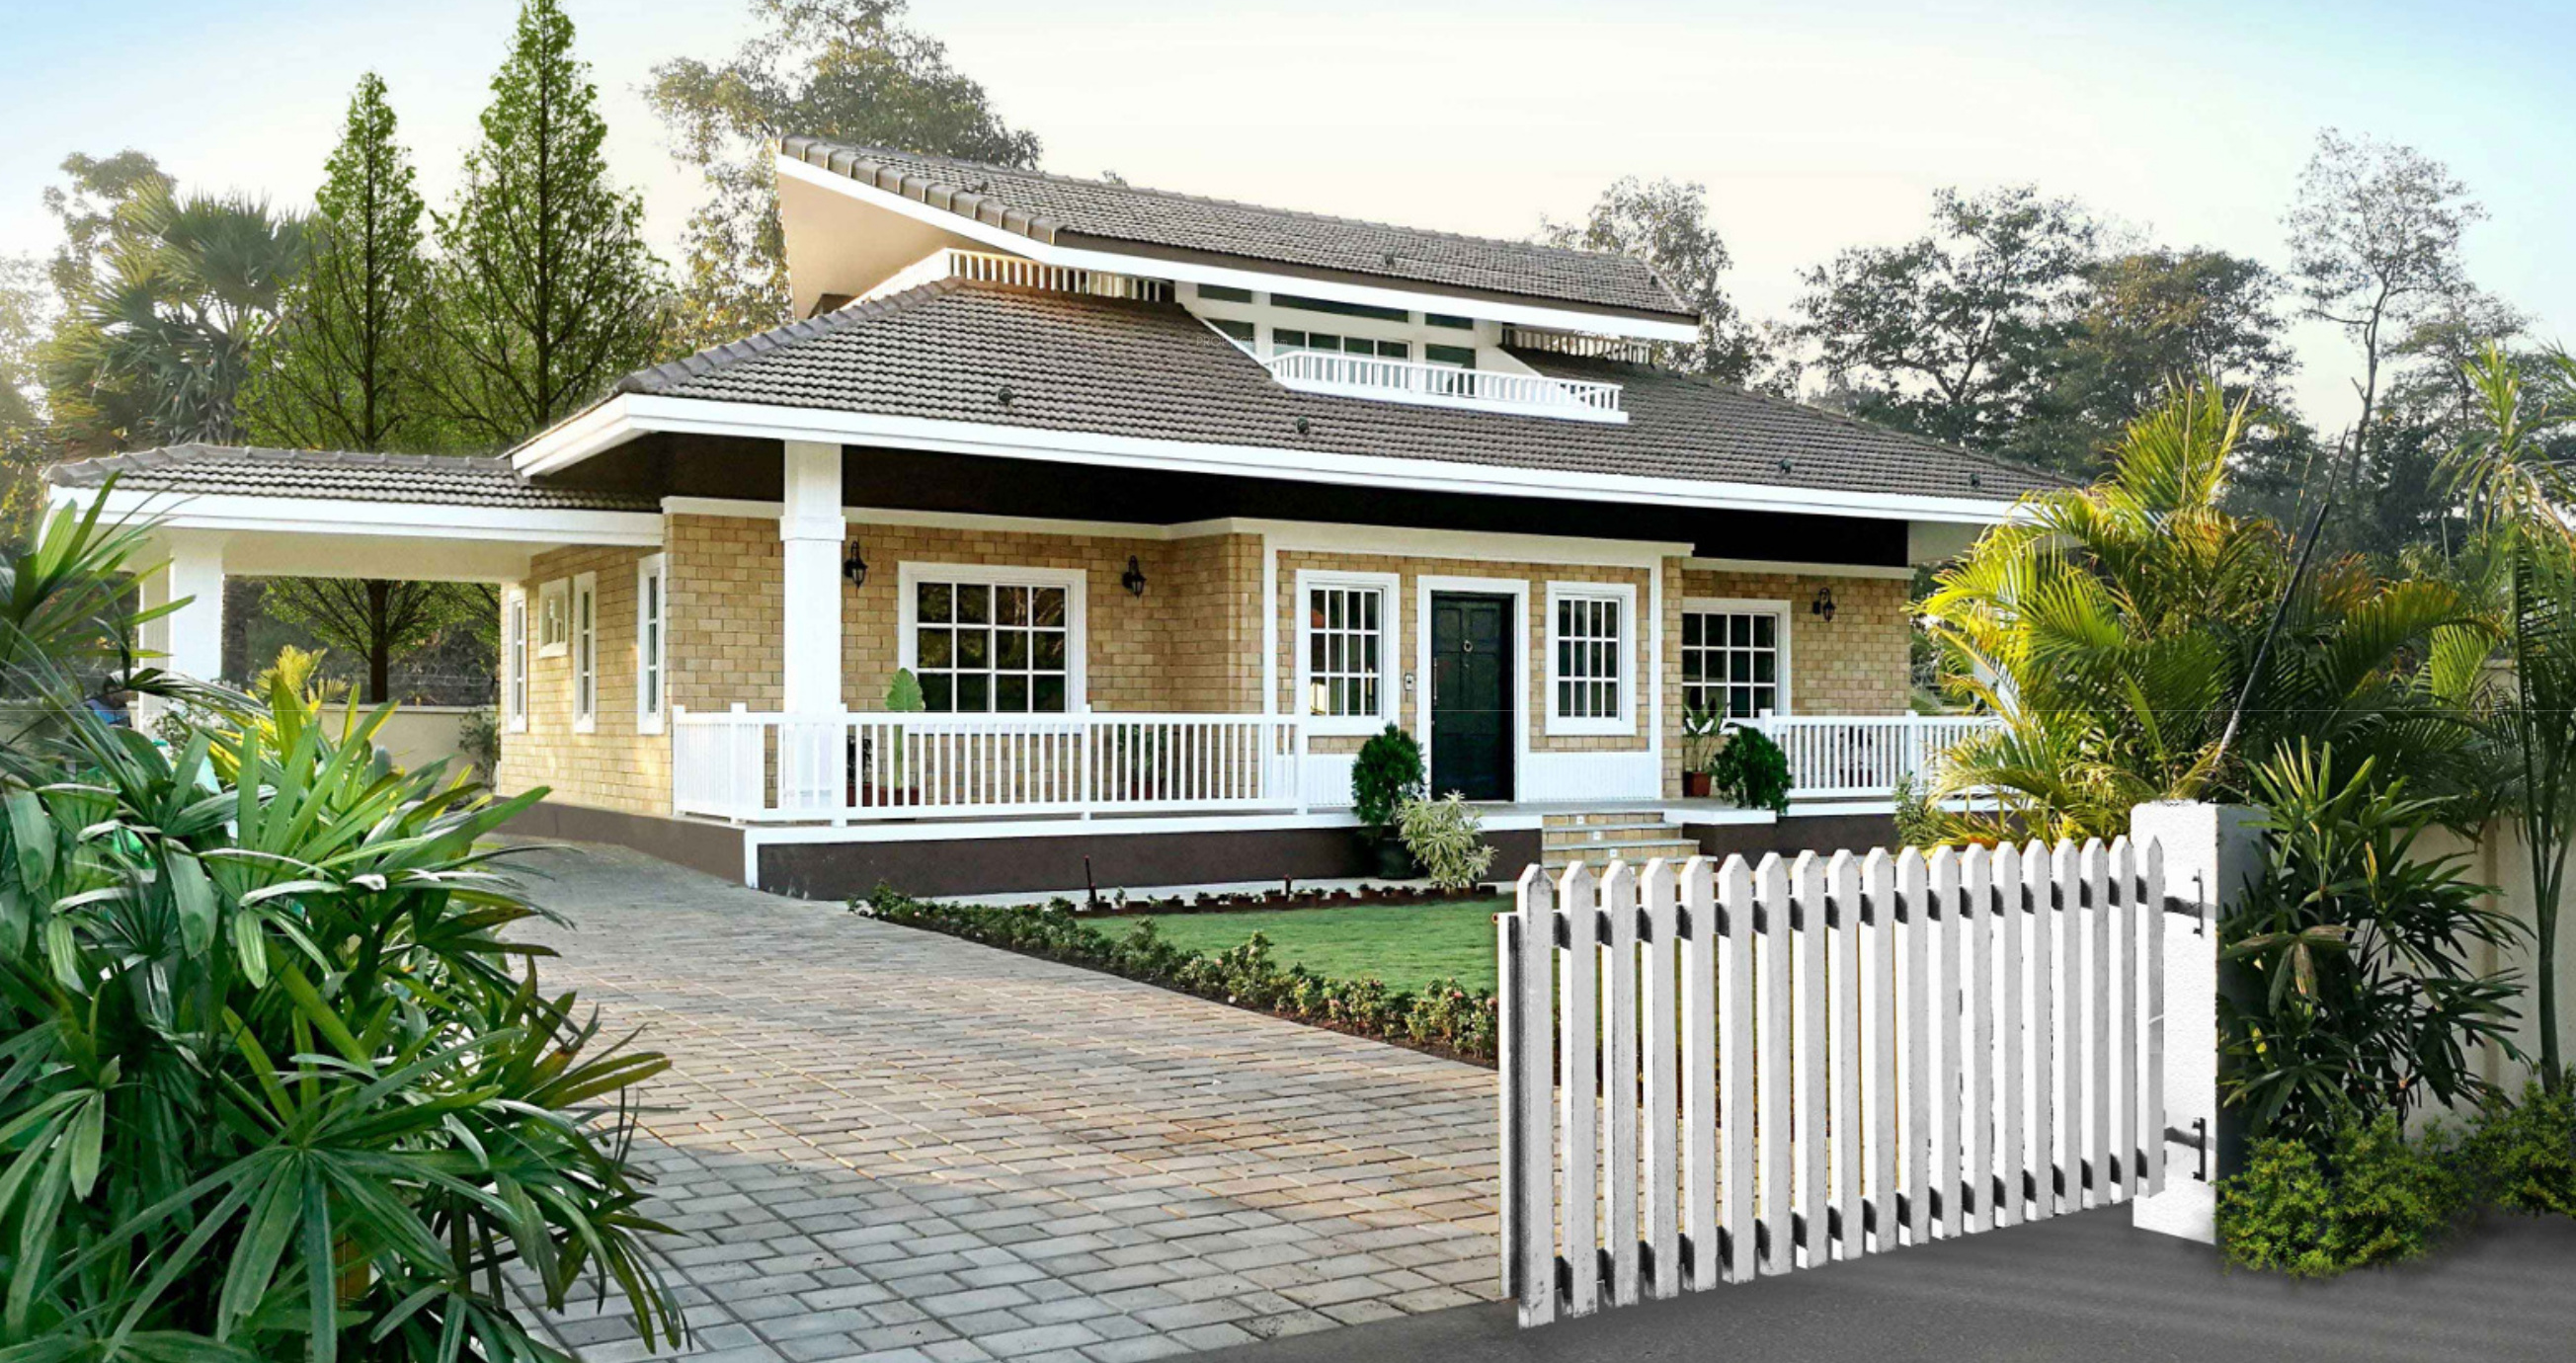 Luxury House in Mumbai - Buy Luxury Independent Villas for sale in